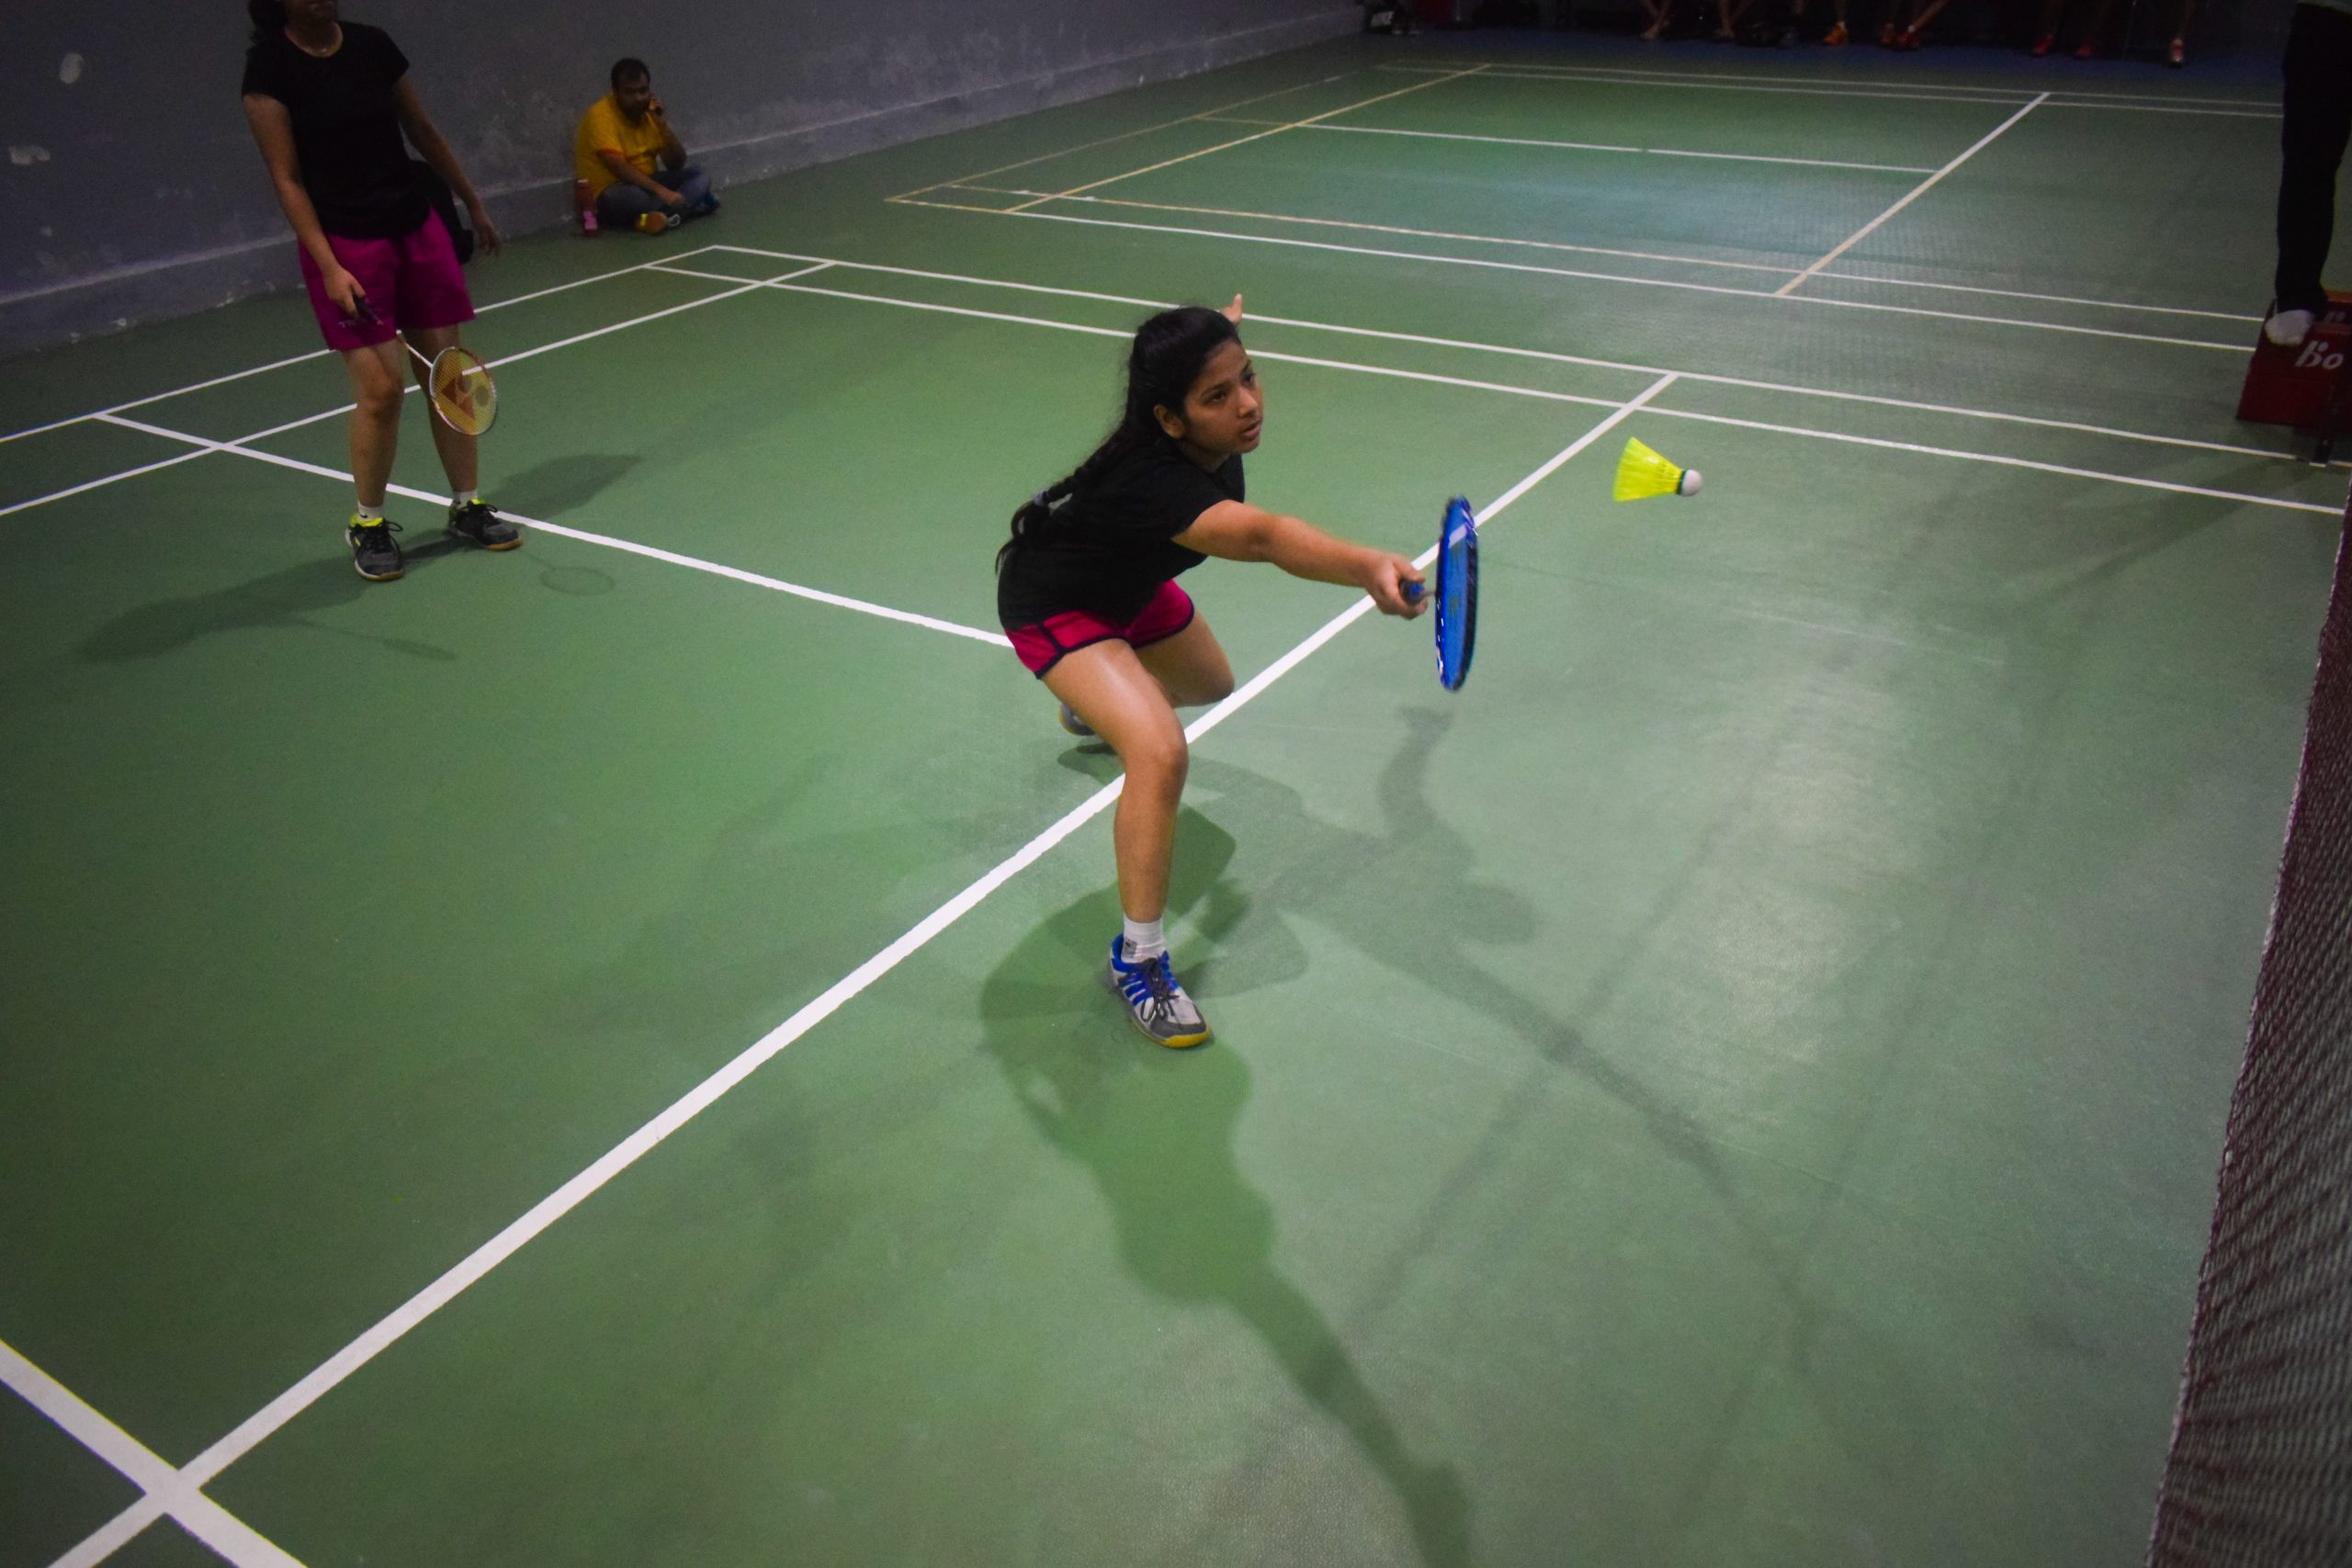 A girl playing badminton